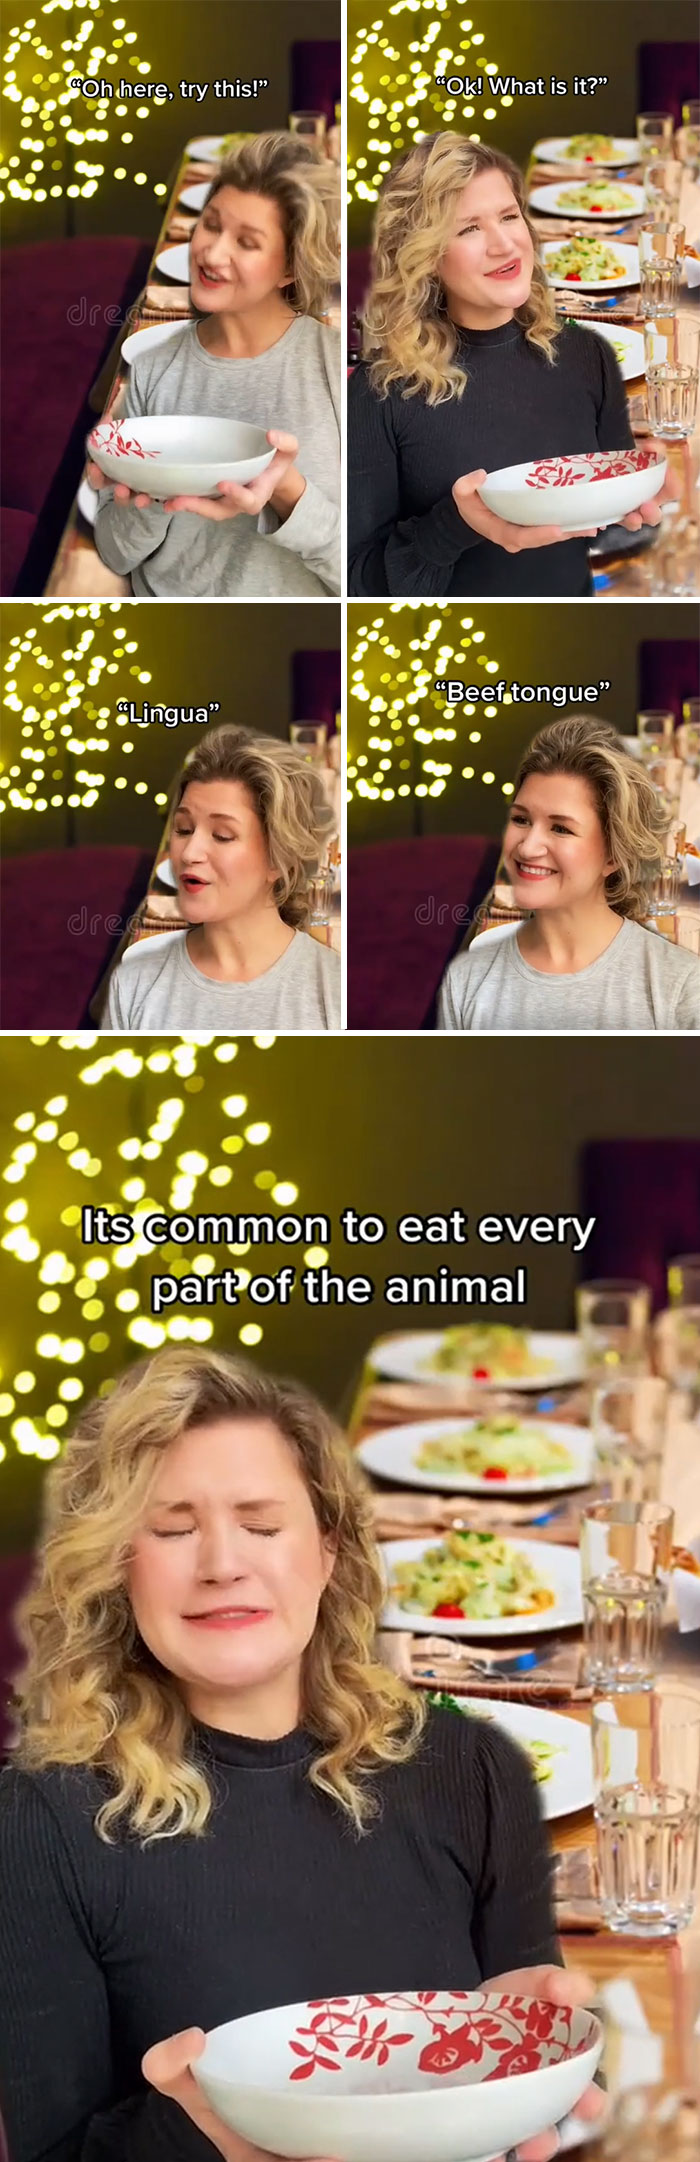 It's Common To Eat Every Part Of The Animal